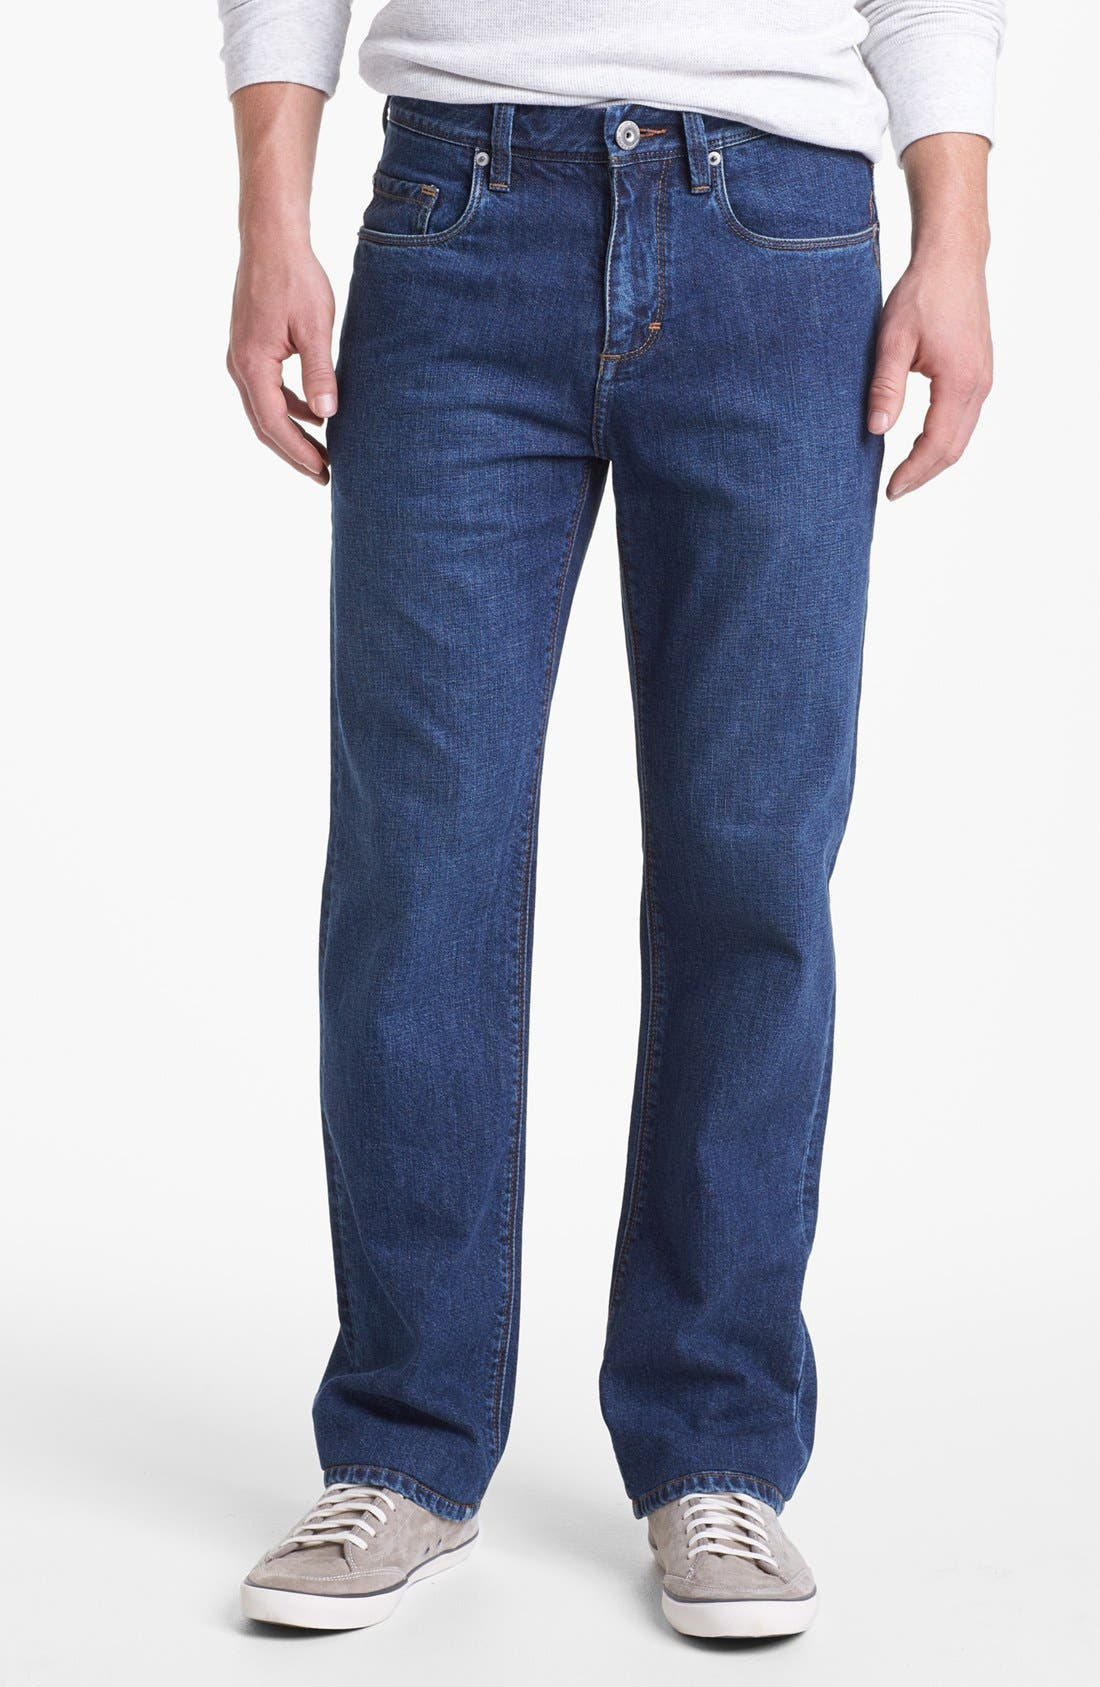 Main Image - Tommy Bahama Denim 'Stevie' Standard Fit Jeans (Dark Wash)